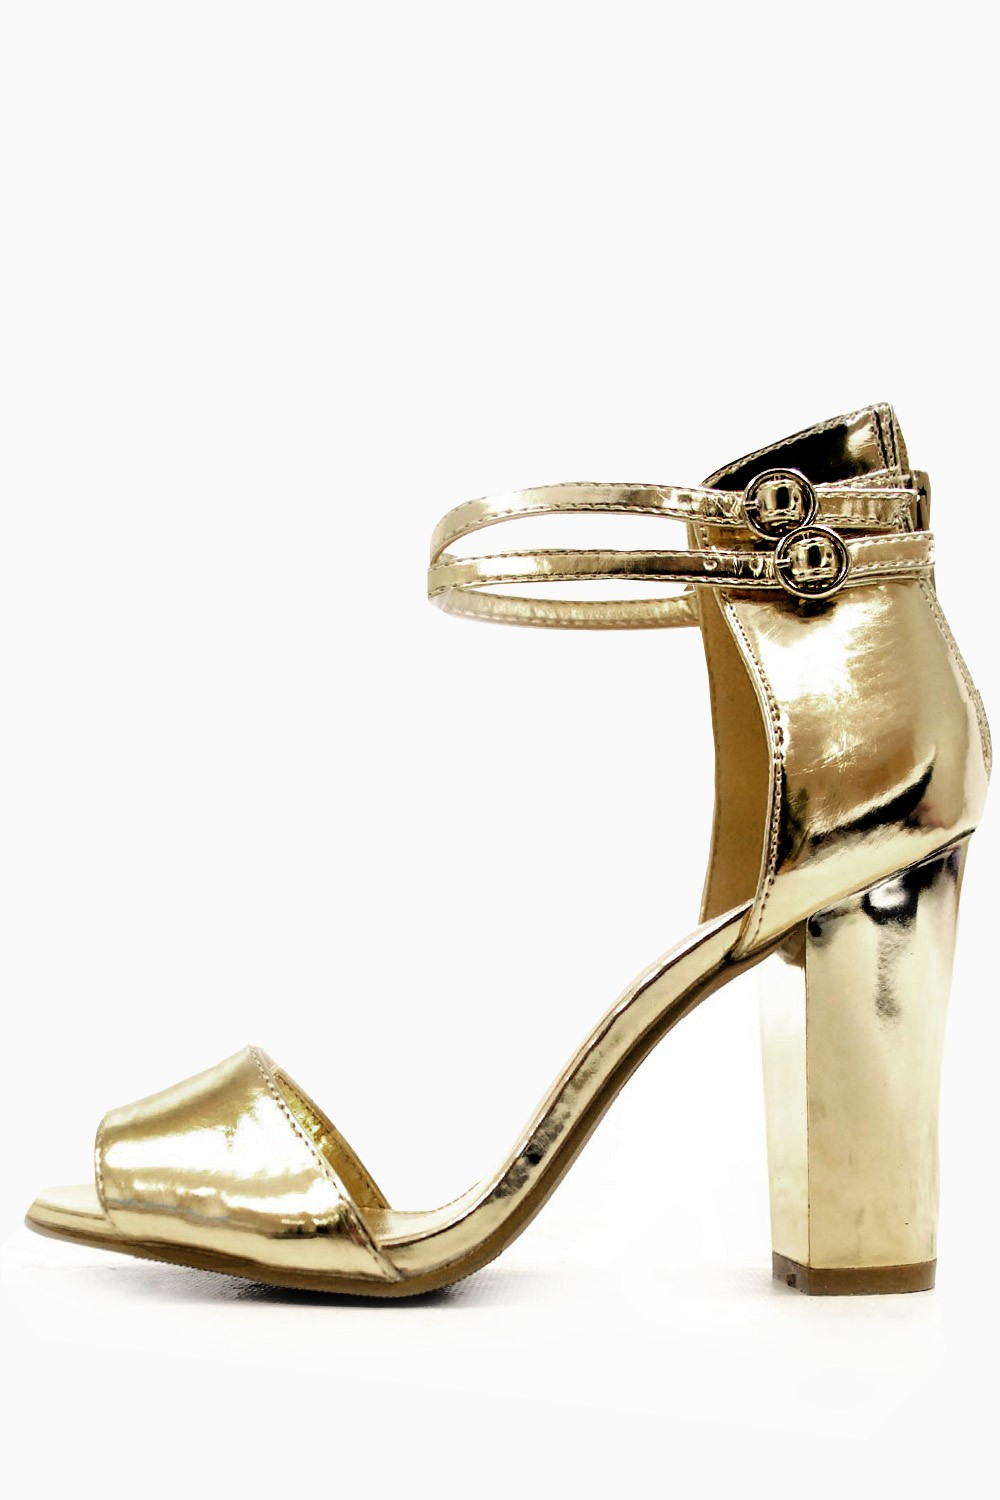 Paris Chunky Heels Sandals in Gold